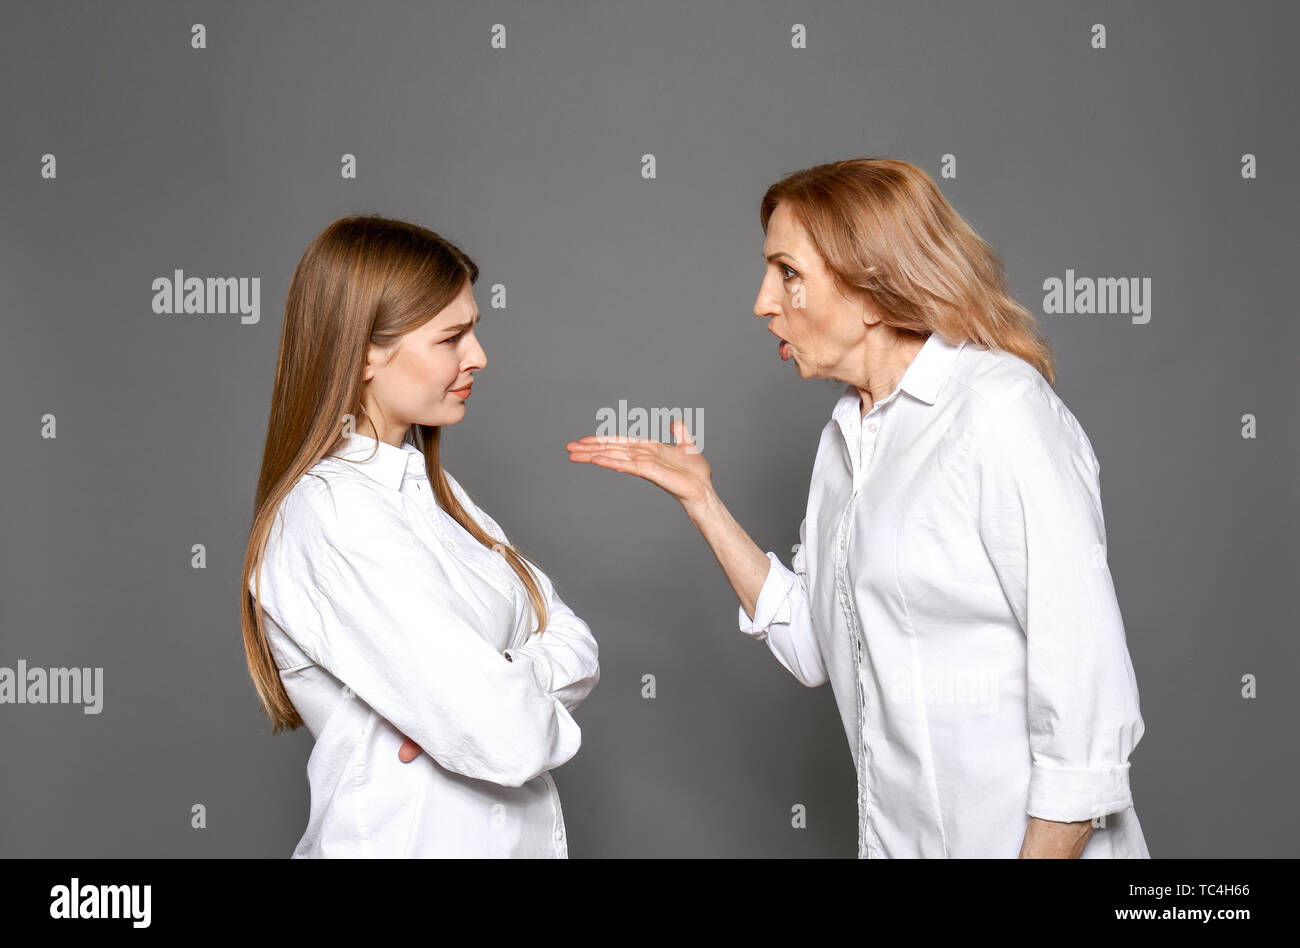 Quarreling mother and daughter on grey background - Stock Image